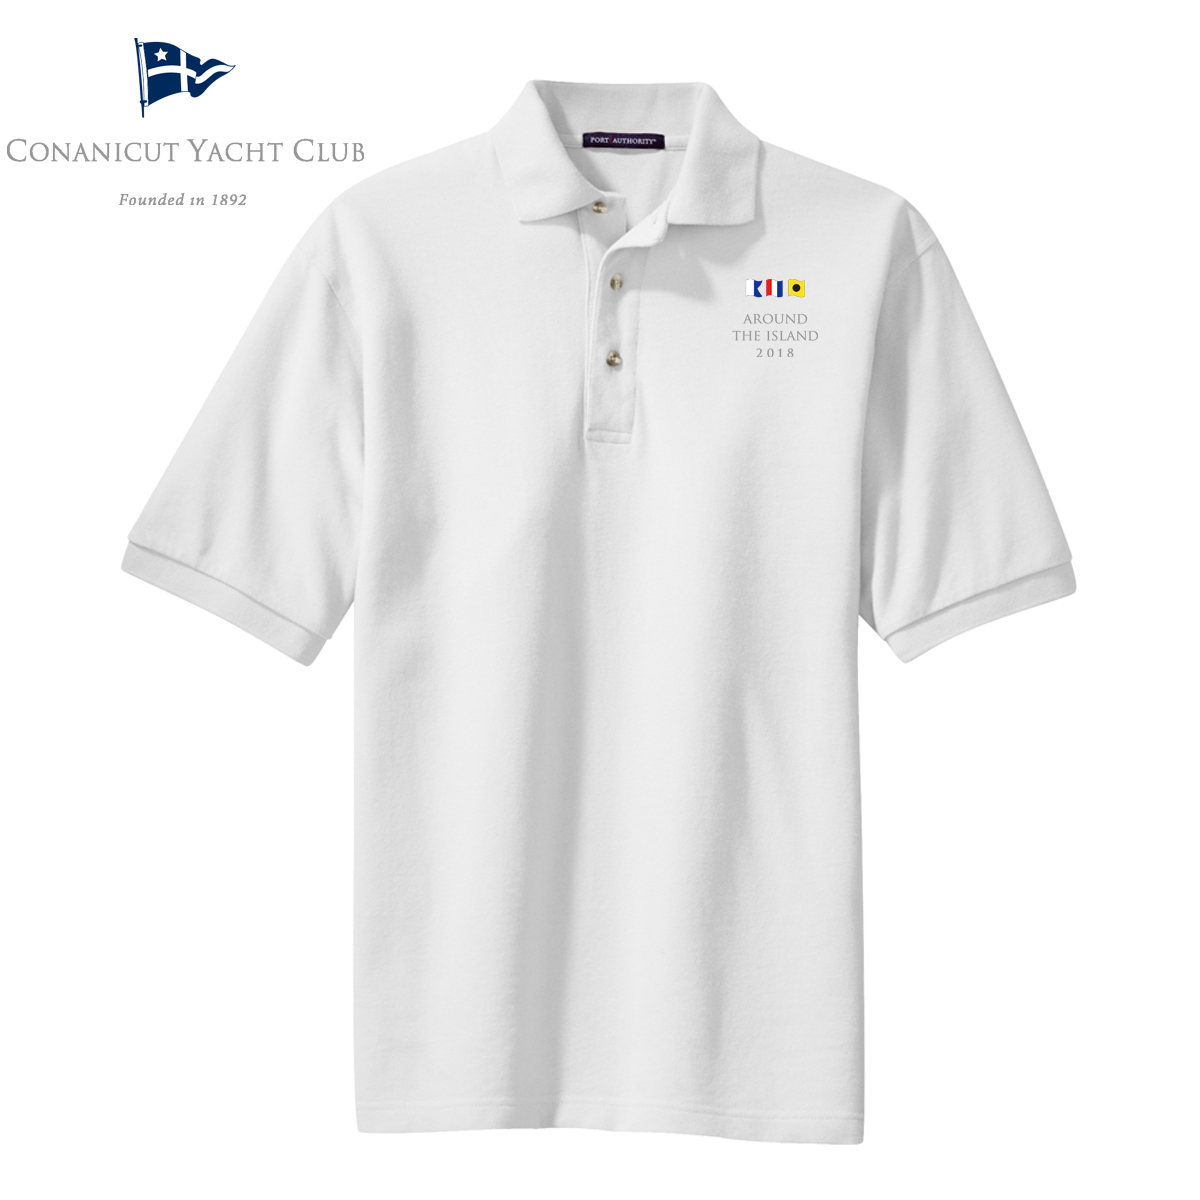 ATI RACE 2018 - M'S COTTON POLO